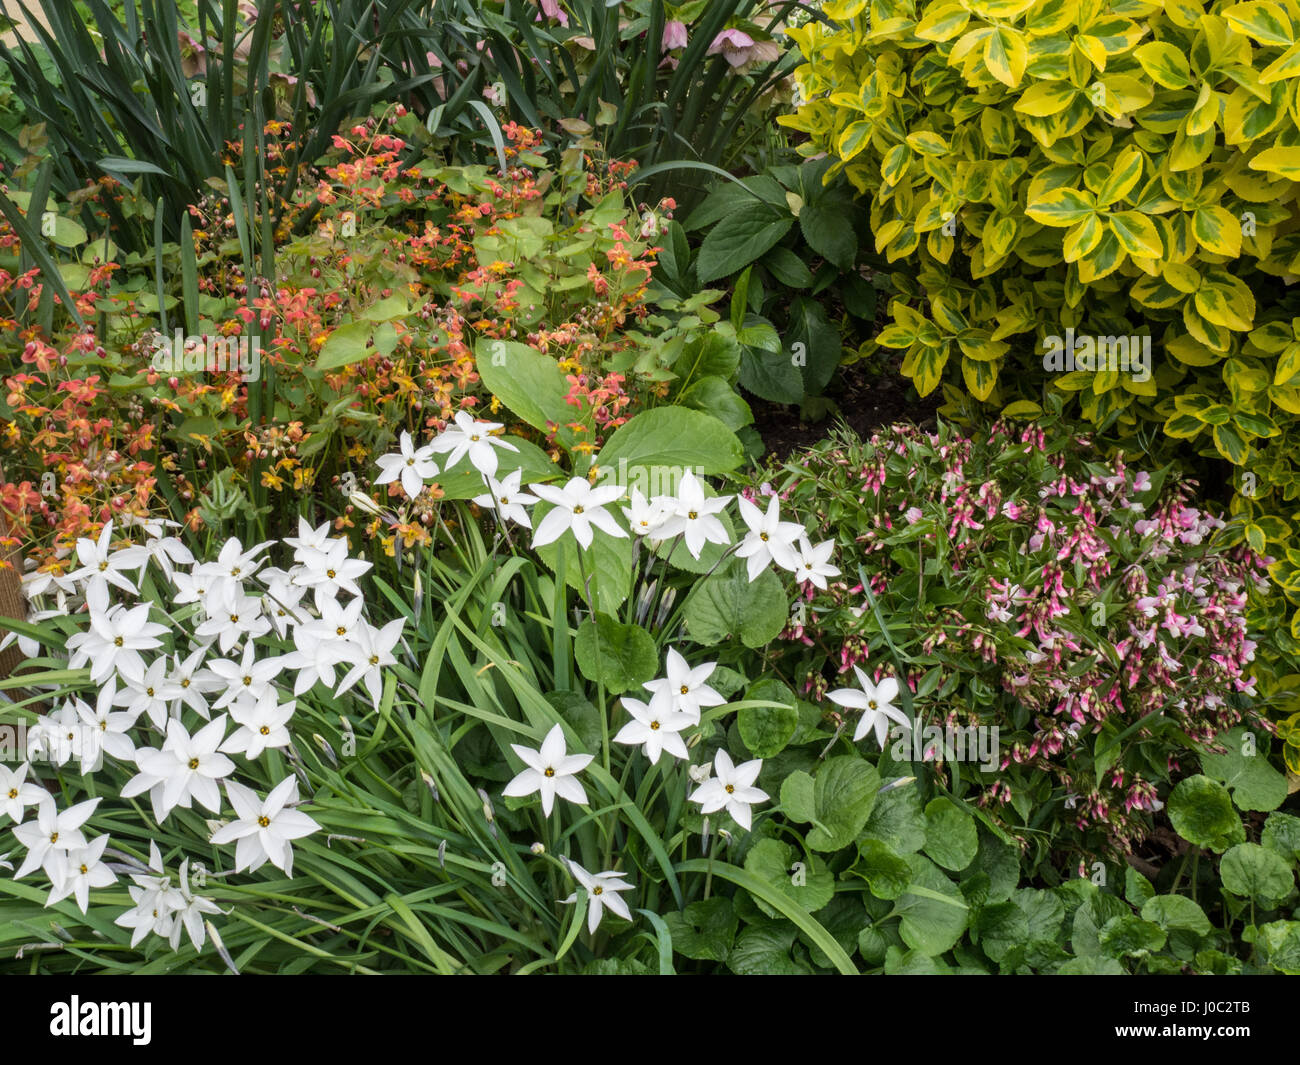 Grouping of spring flowering perennials in a border - Stock Image